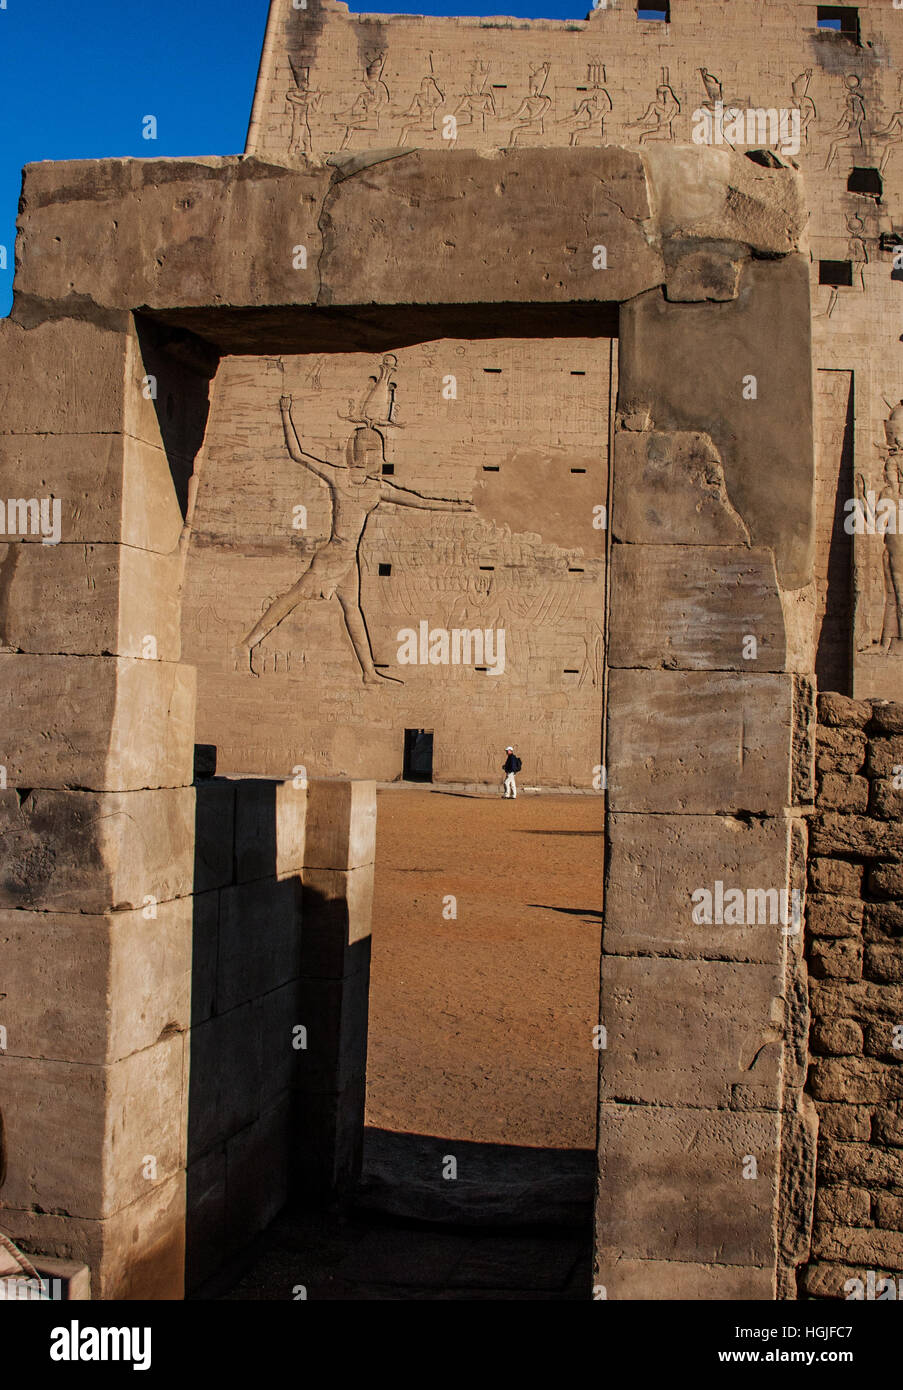 Man, dwarfed by the size of the Temple of Edfu on the Nile in Egypt, heads to a tiny side entrance as seen through Stock Photo